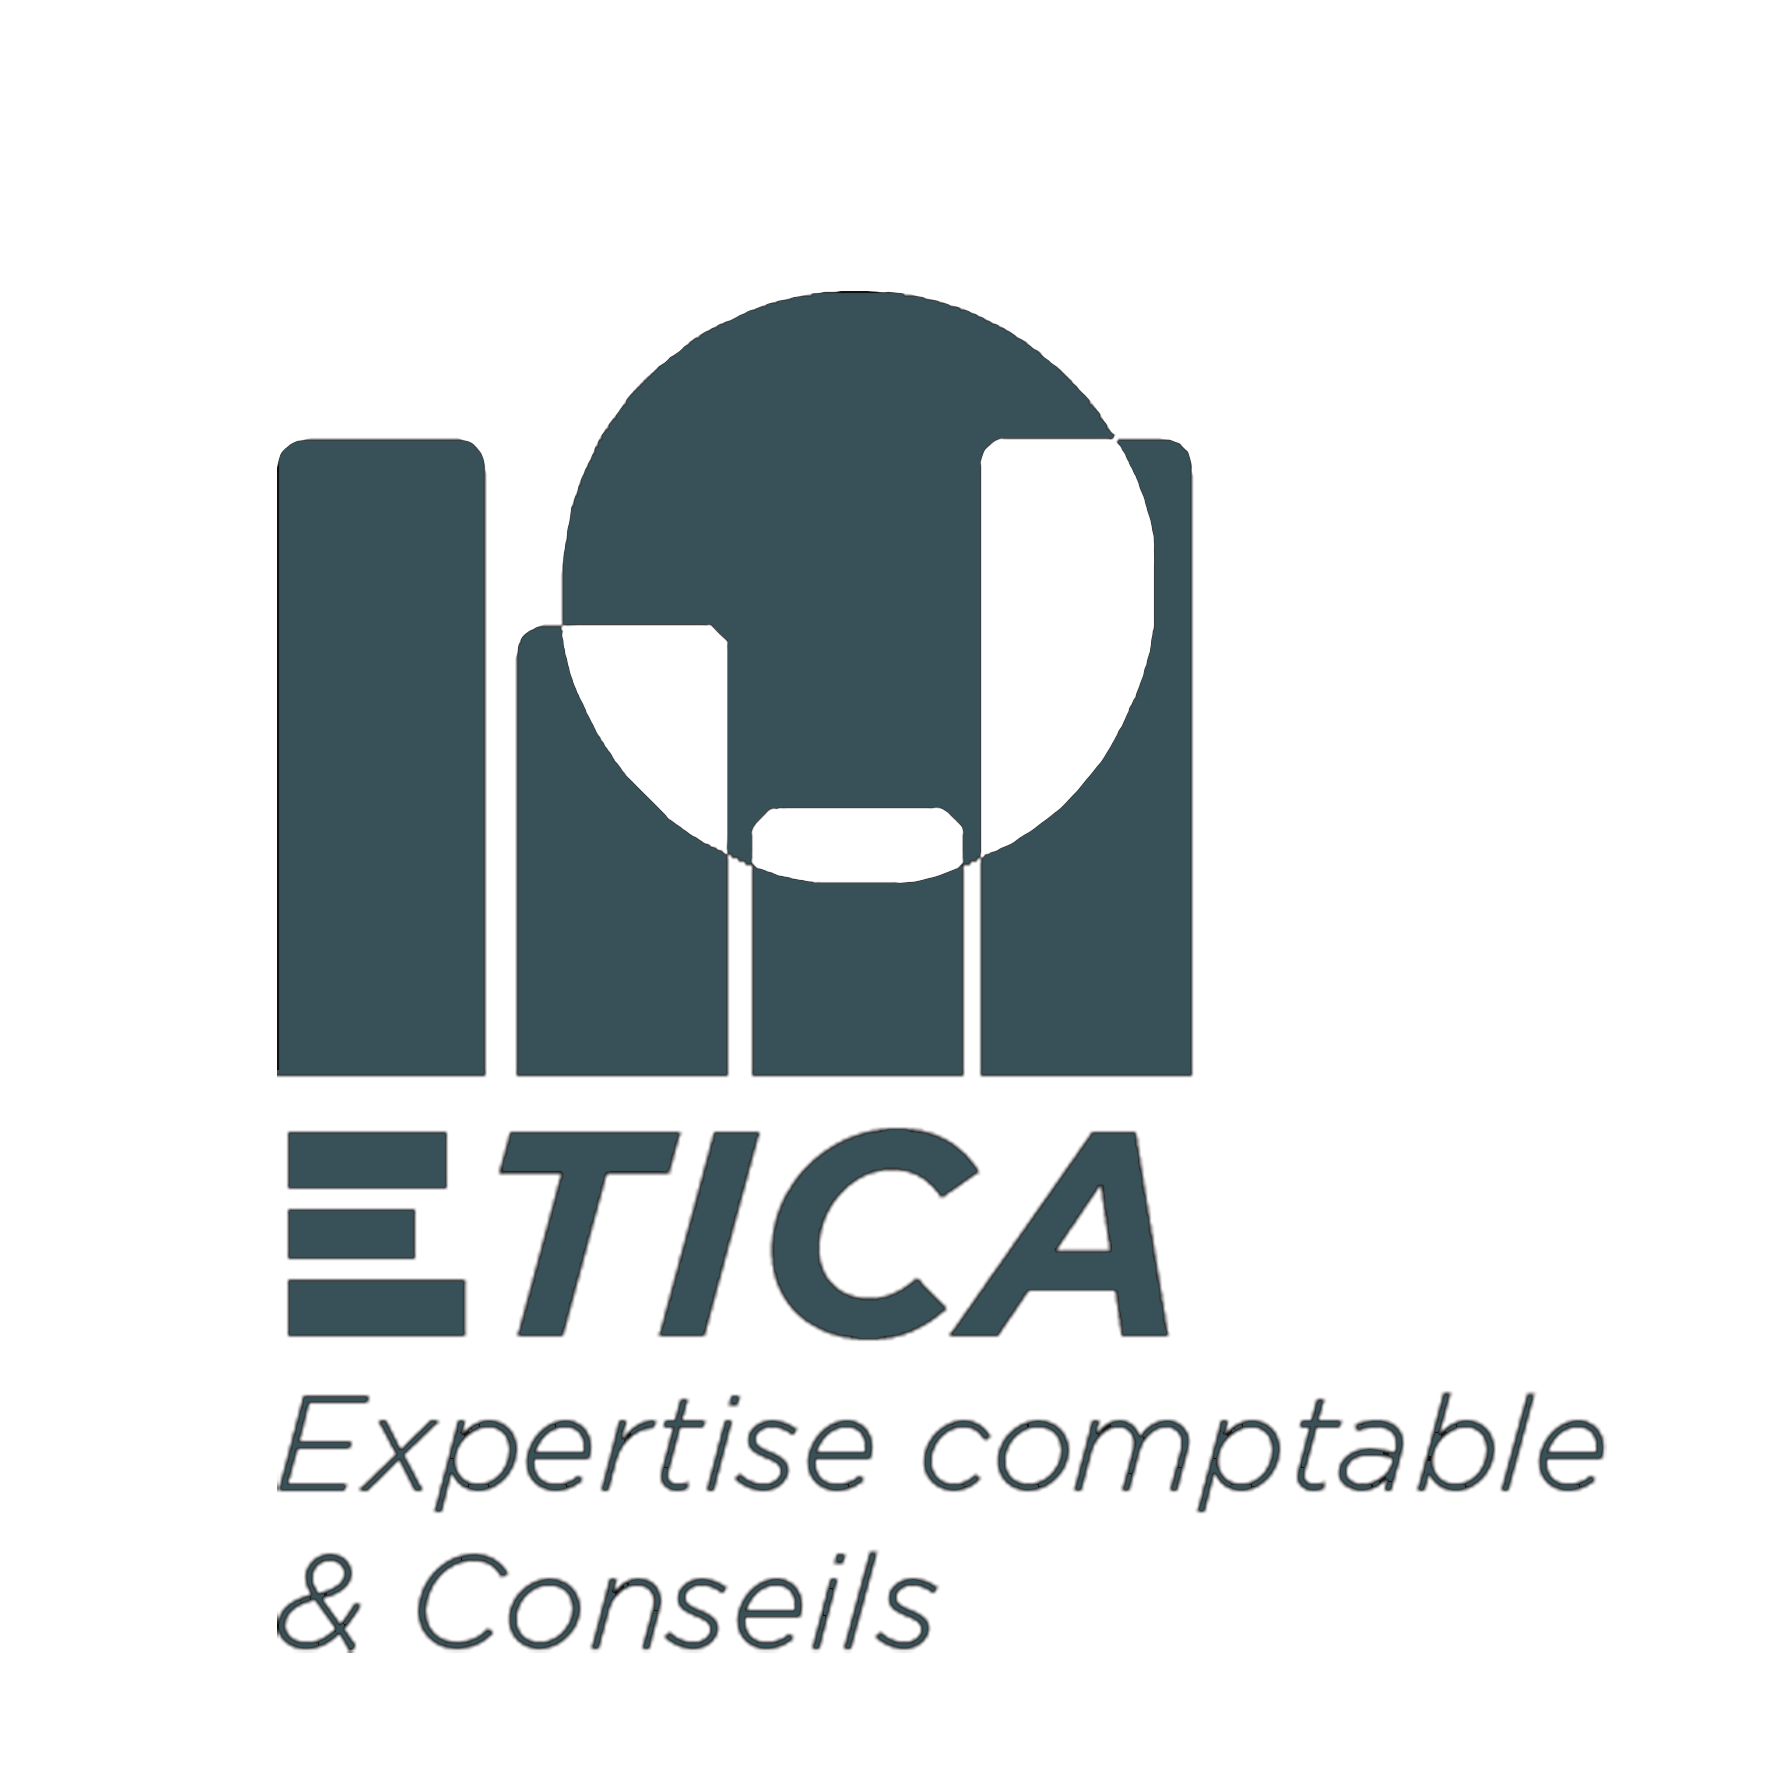 ETICA EXPERTISE COMPTABLE